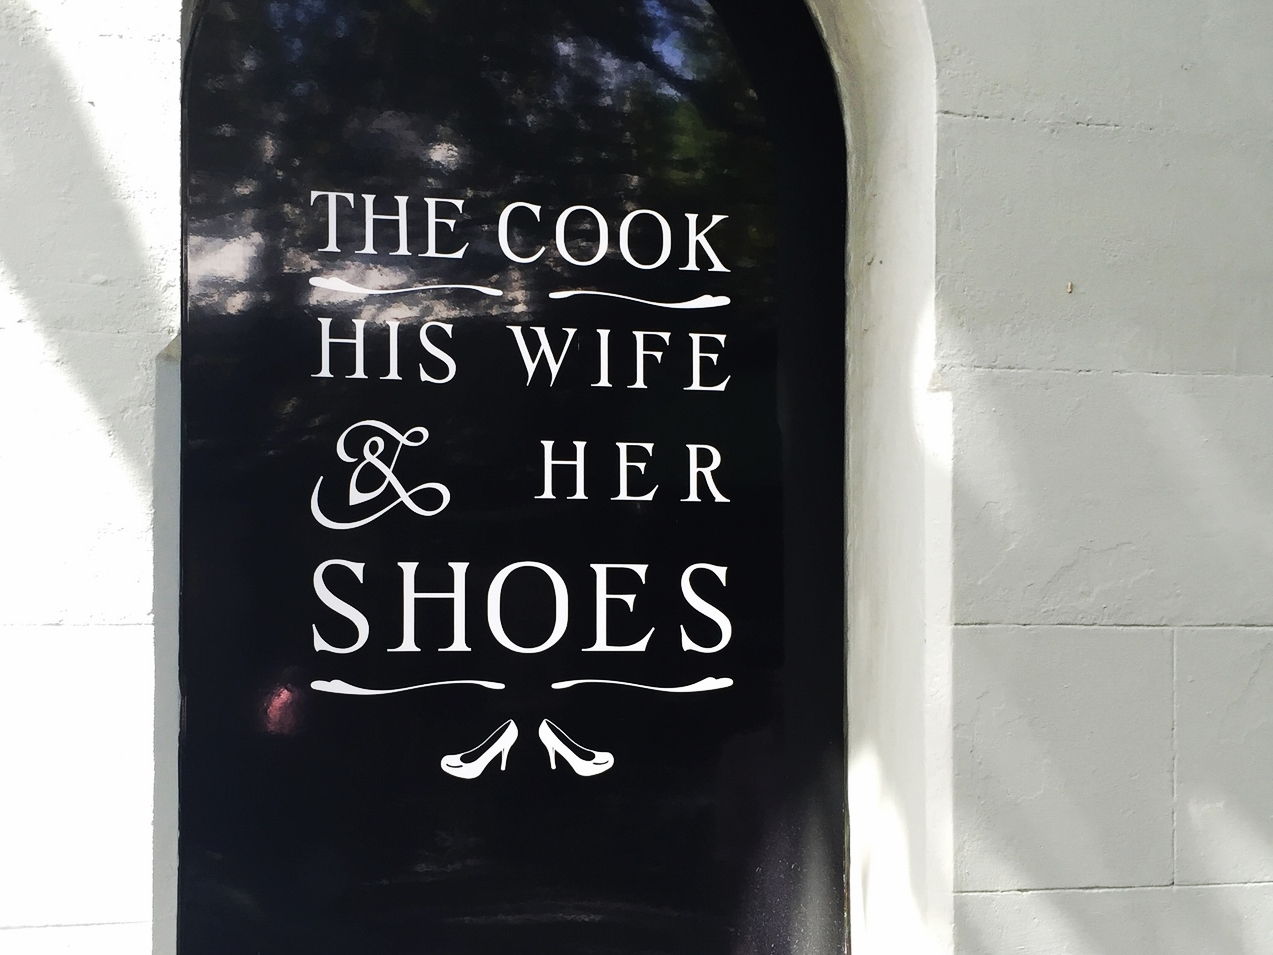 The Cook, His Wife, and Her Shoes Boutique, Sydney